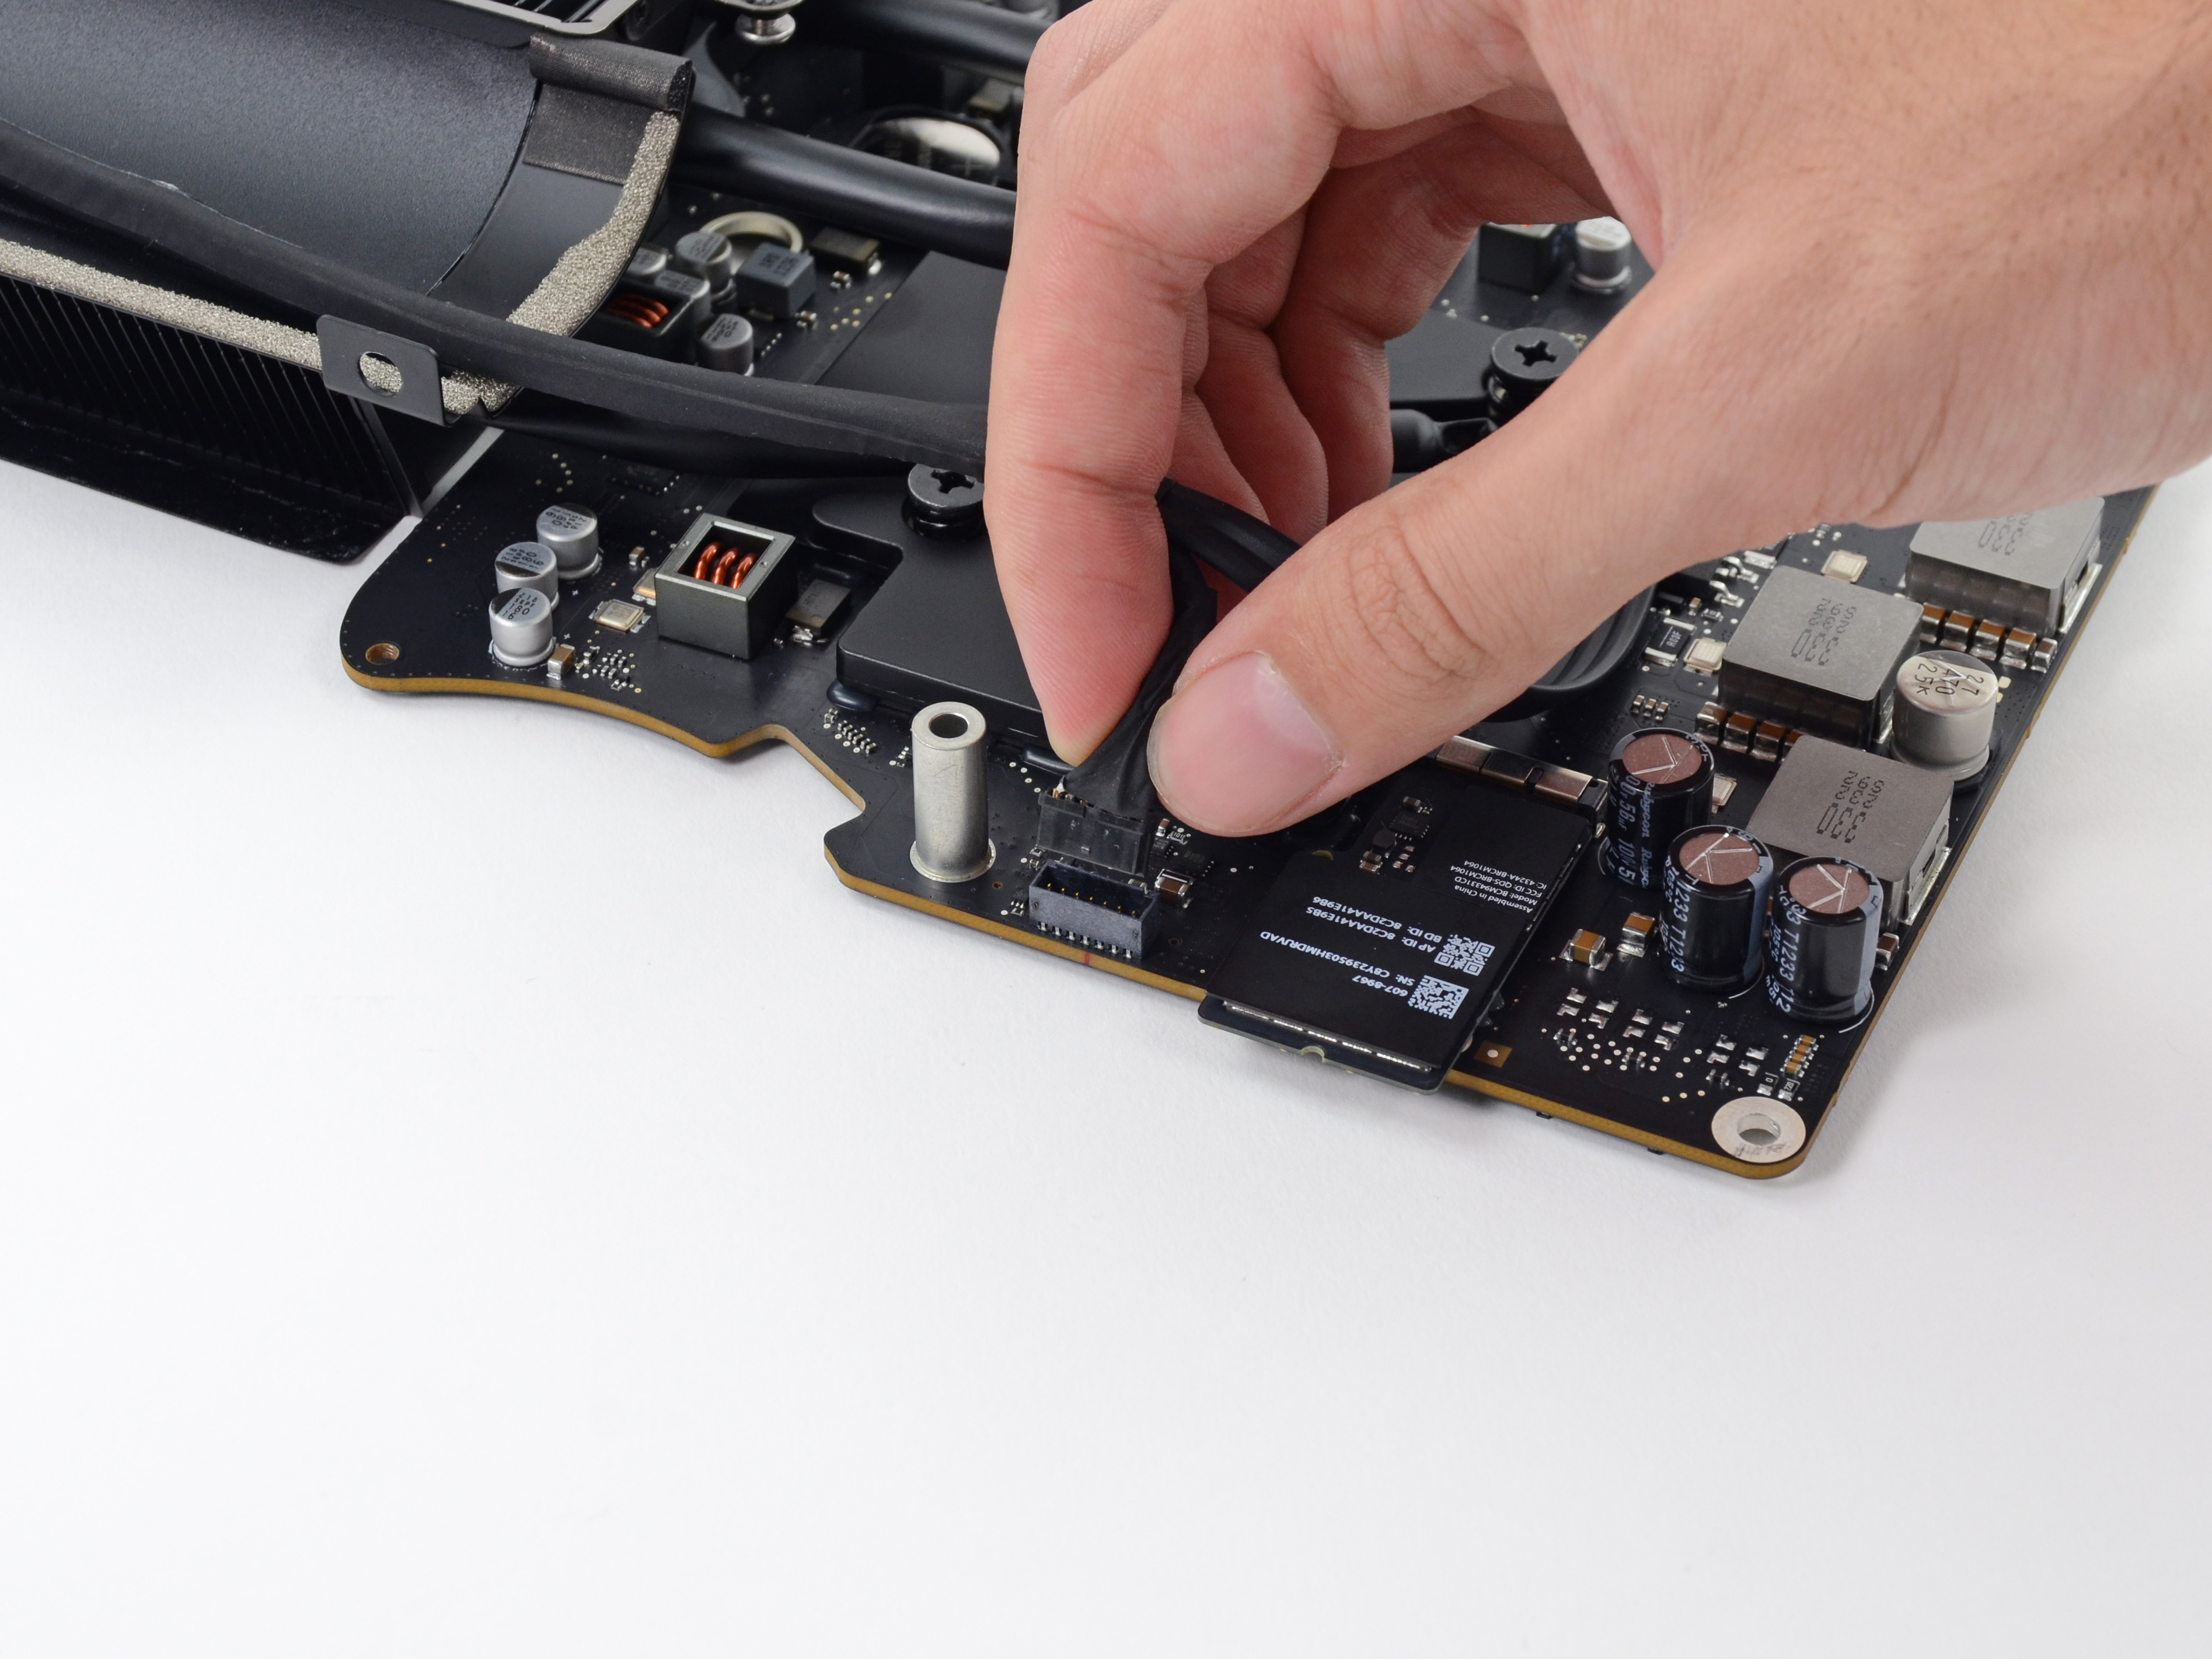 iMac late 2013 27in PCIe ssd and form factor questions